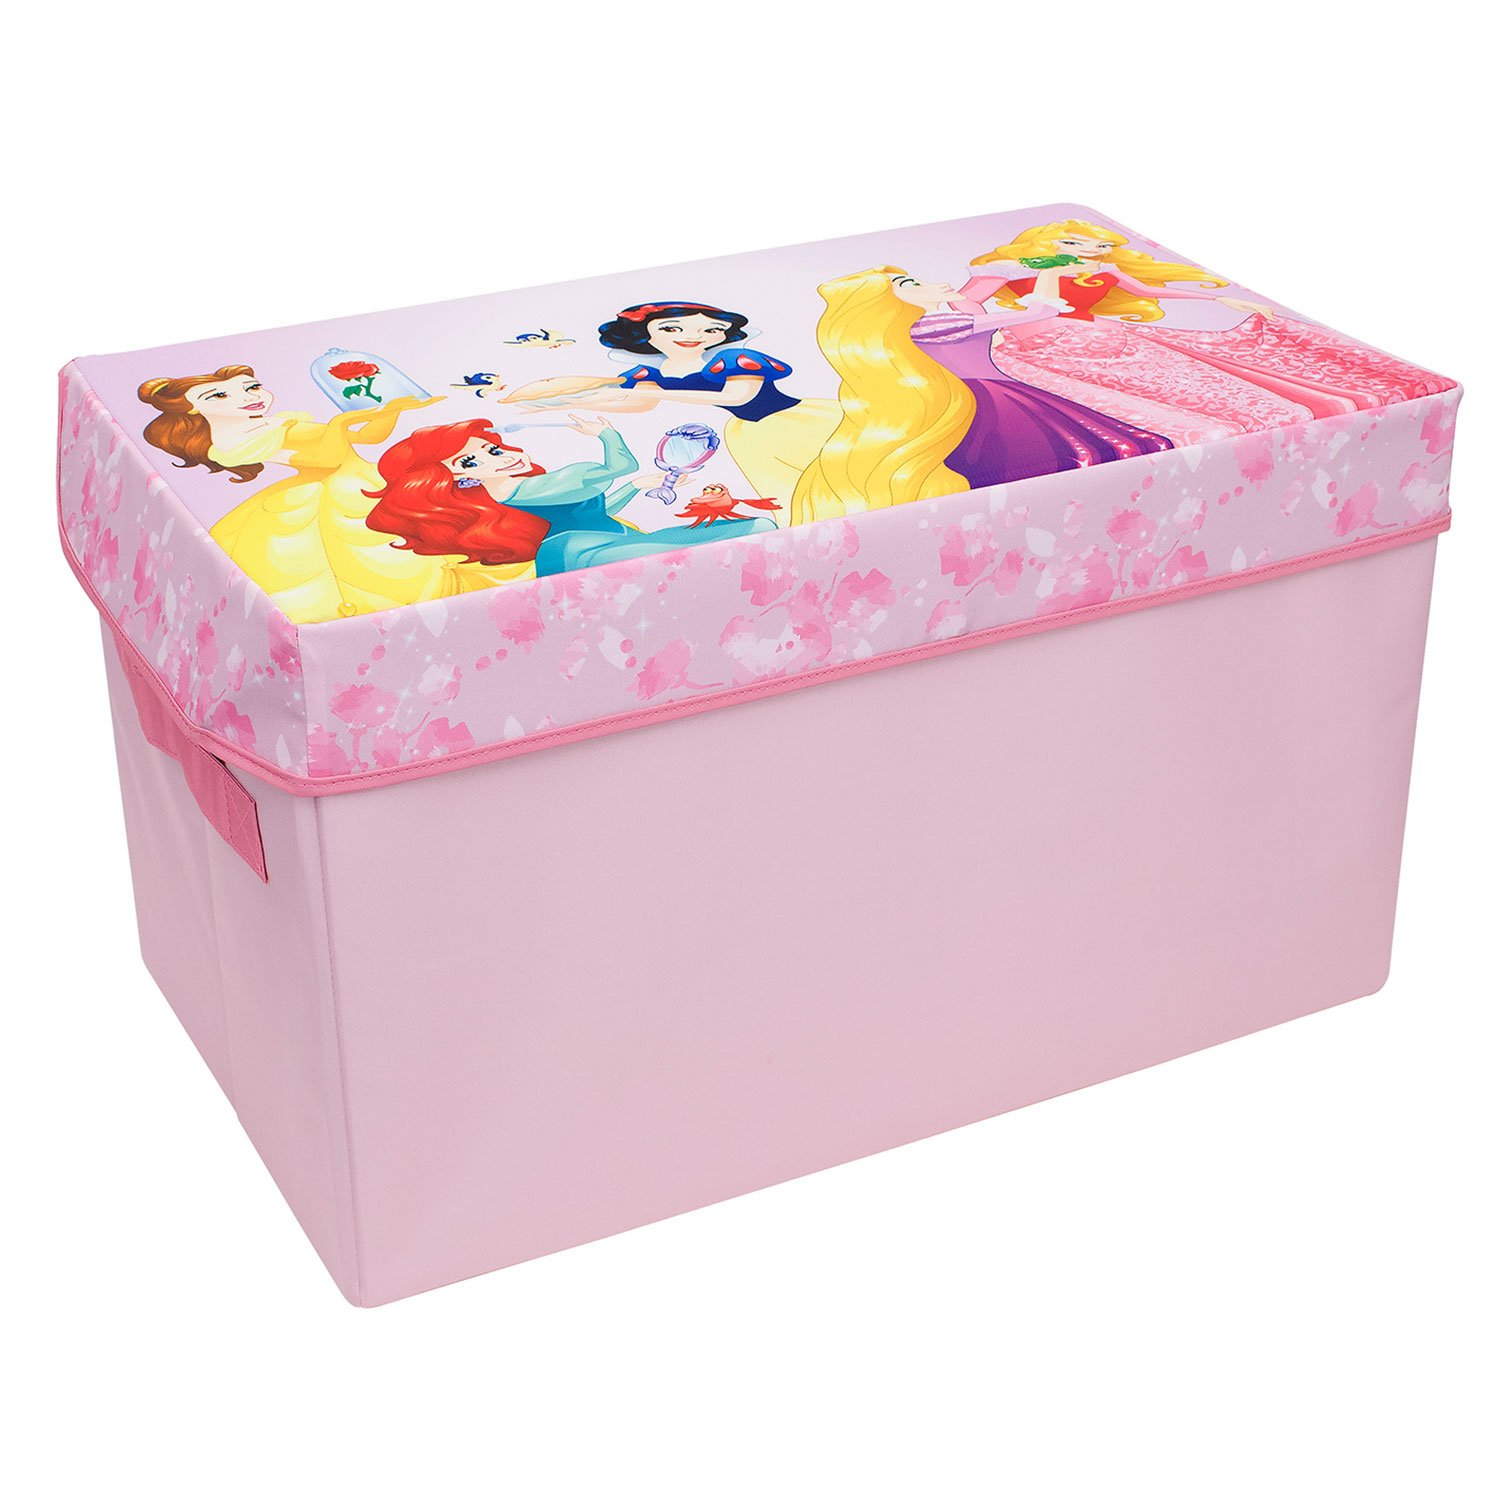 Forever Princess Collapsible KidsToy Storage Chest by Disney - Flip-Top Toy Organizer Bin for Closets, Kids Bedroom, Boys & Girls Toys - Foldable Toy Basket Organizer with Strong Handles & Design Everything Mary